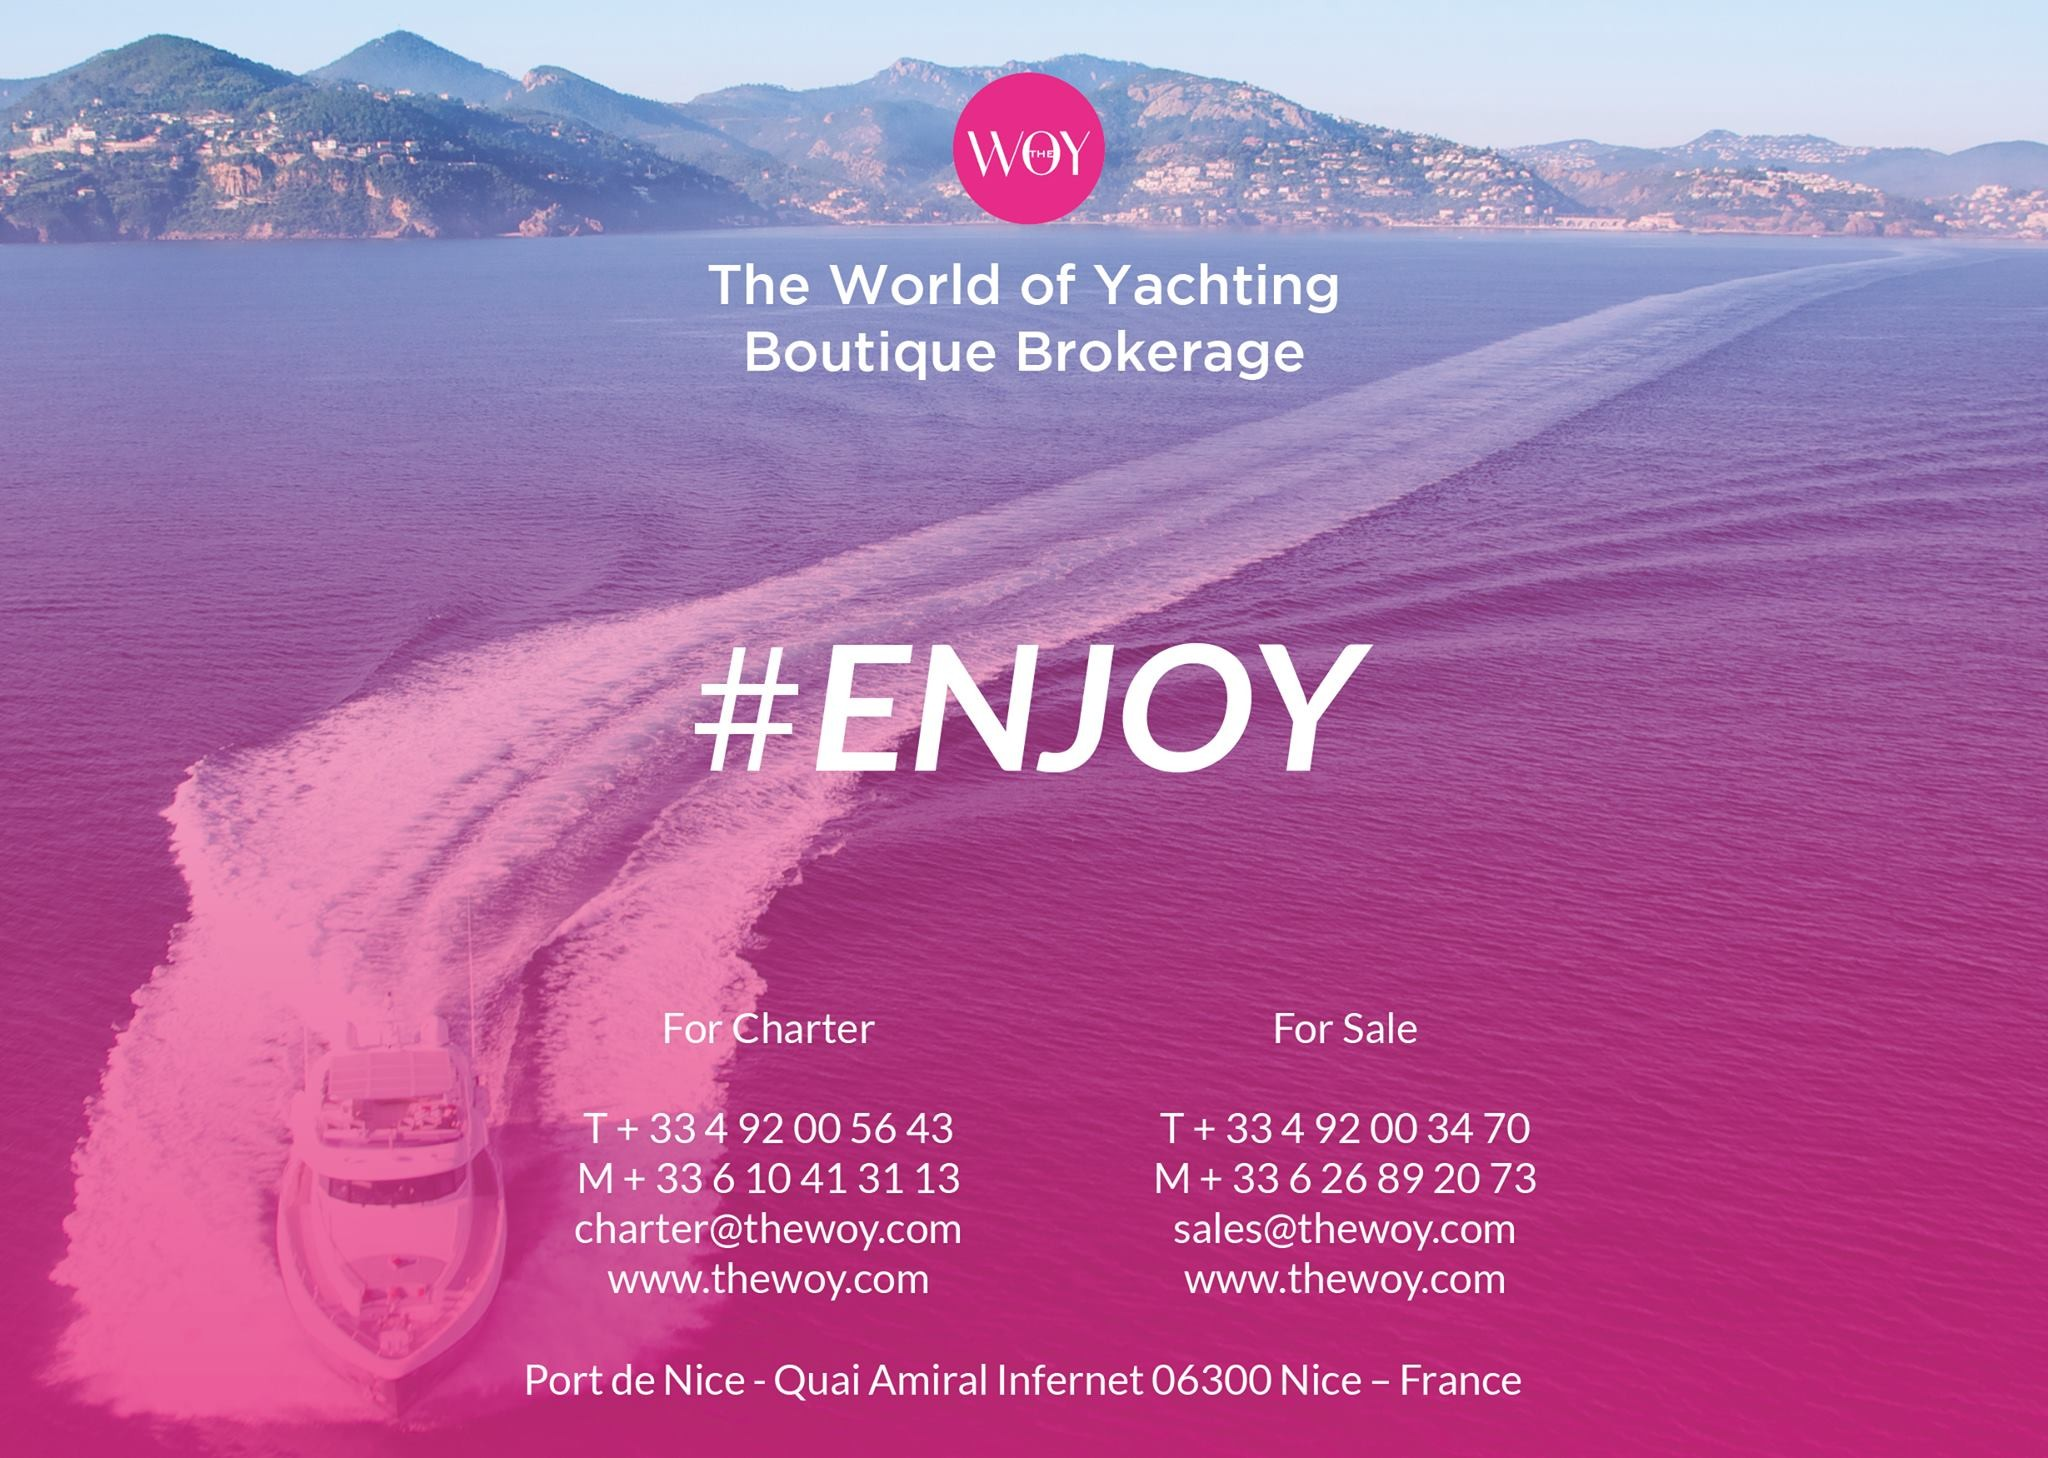 The WOY - The World of Yachting | LinkedIn